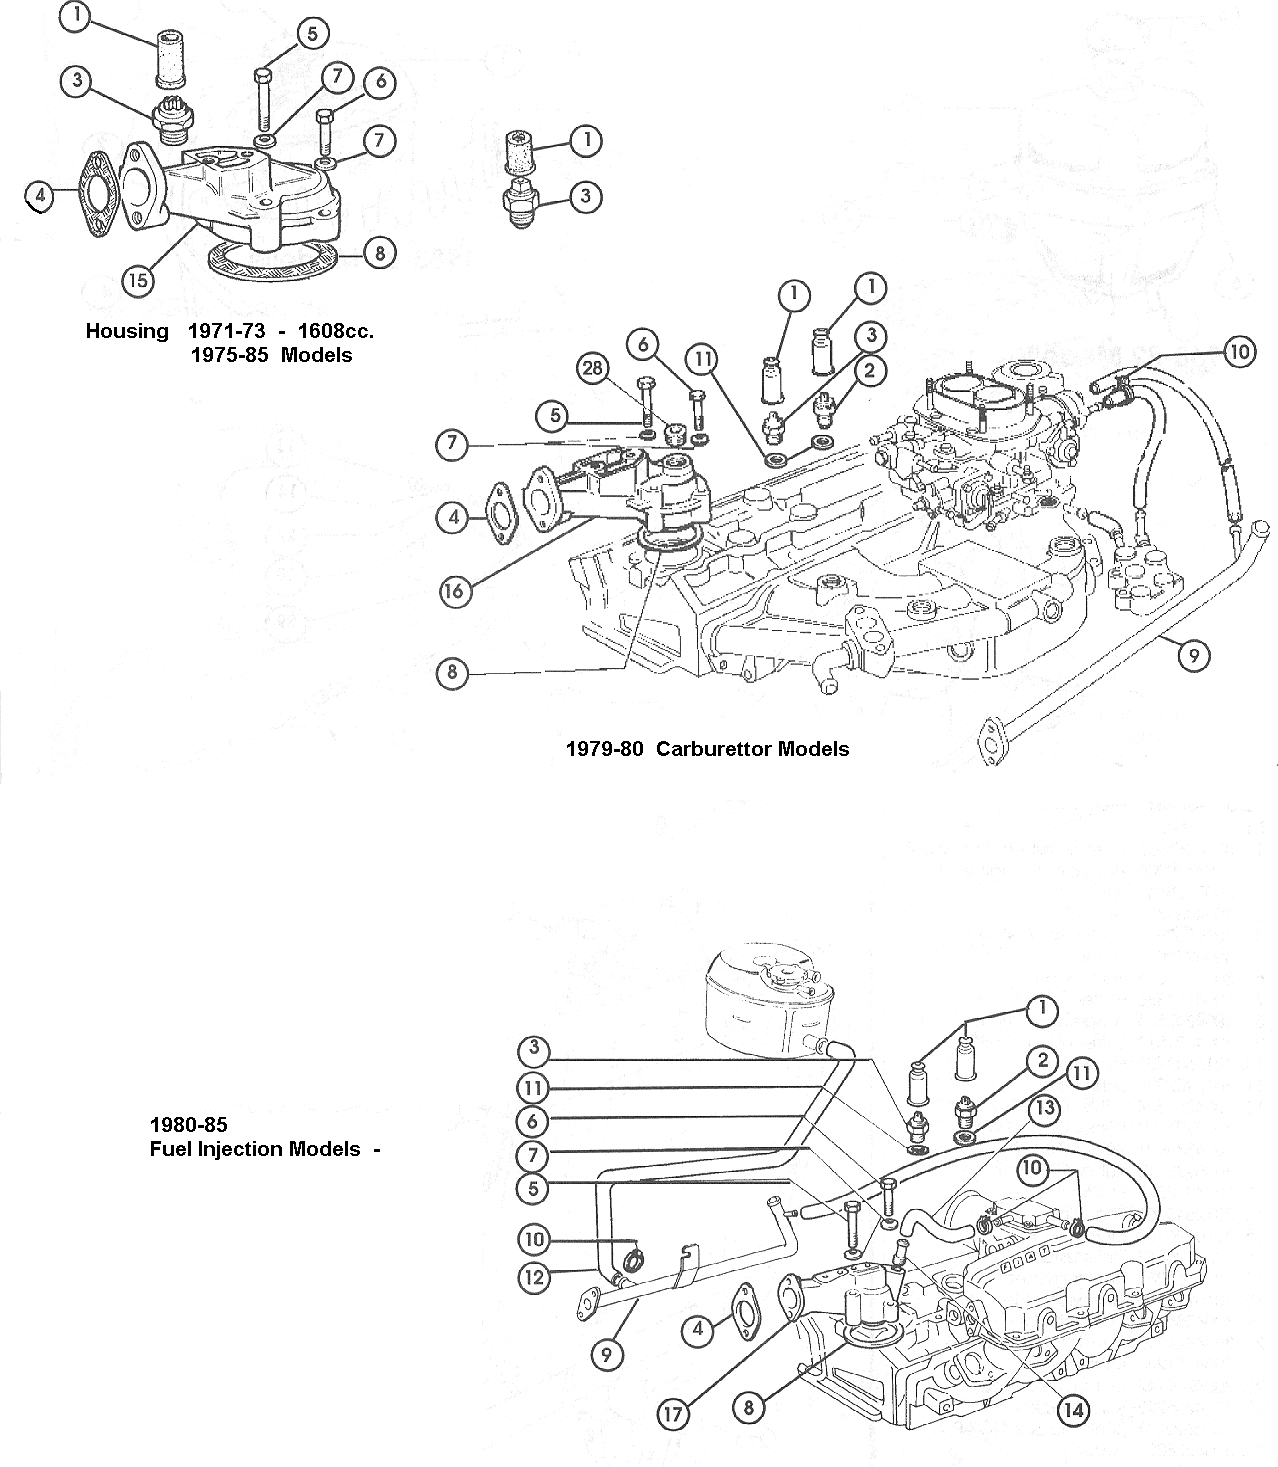 1977 Fiat 124 Fuel Diagram Electrical Wiring Diagrams 1981 Trusted U2022 The Car